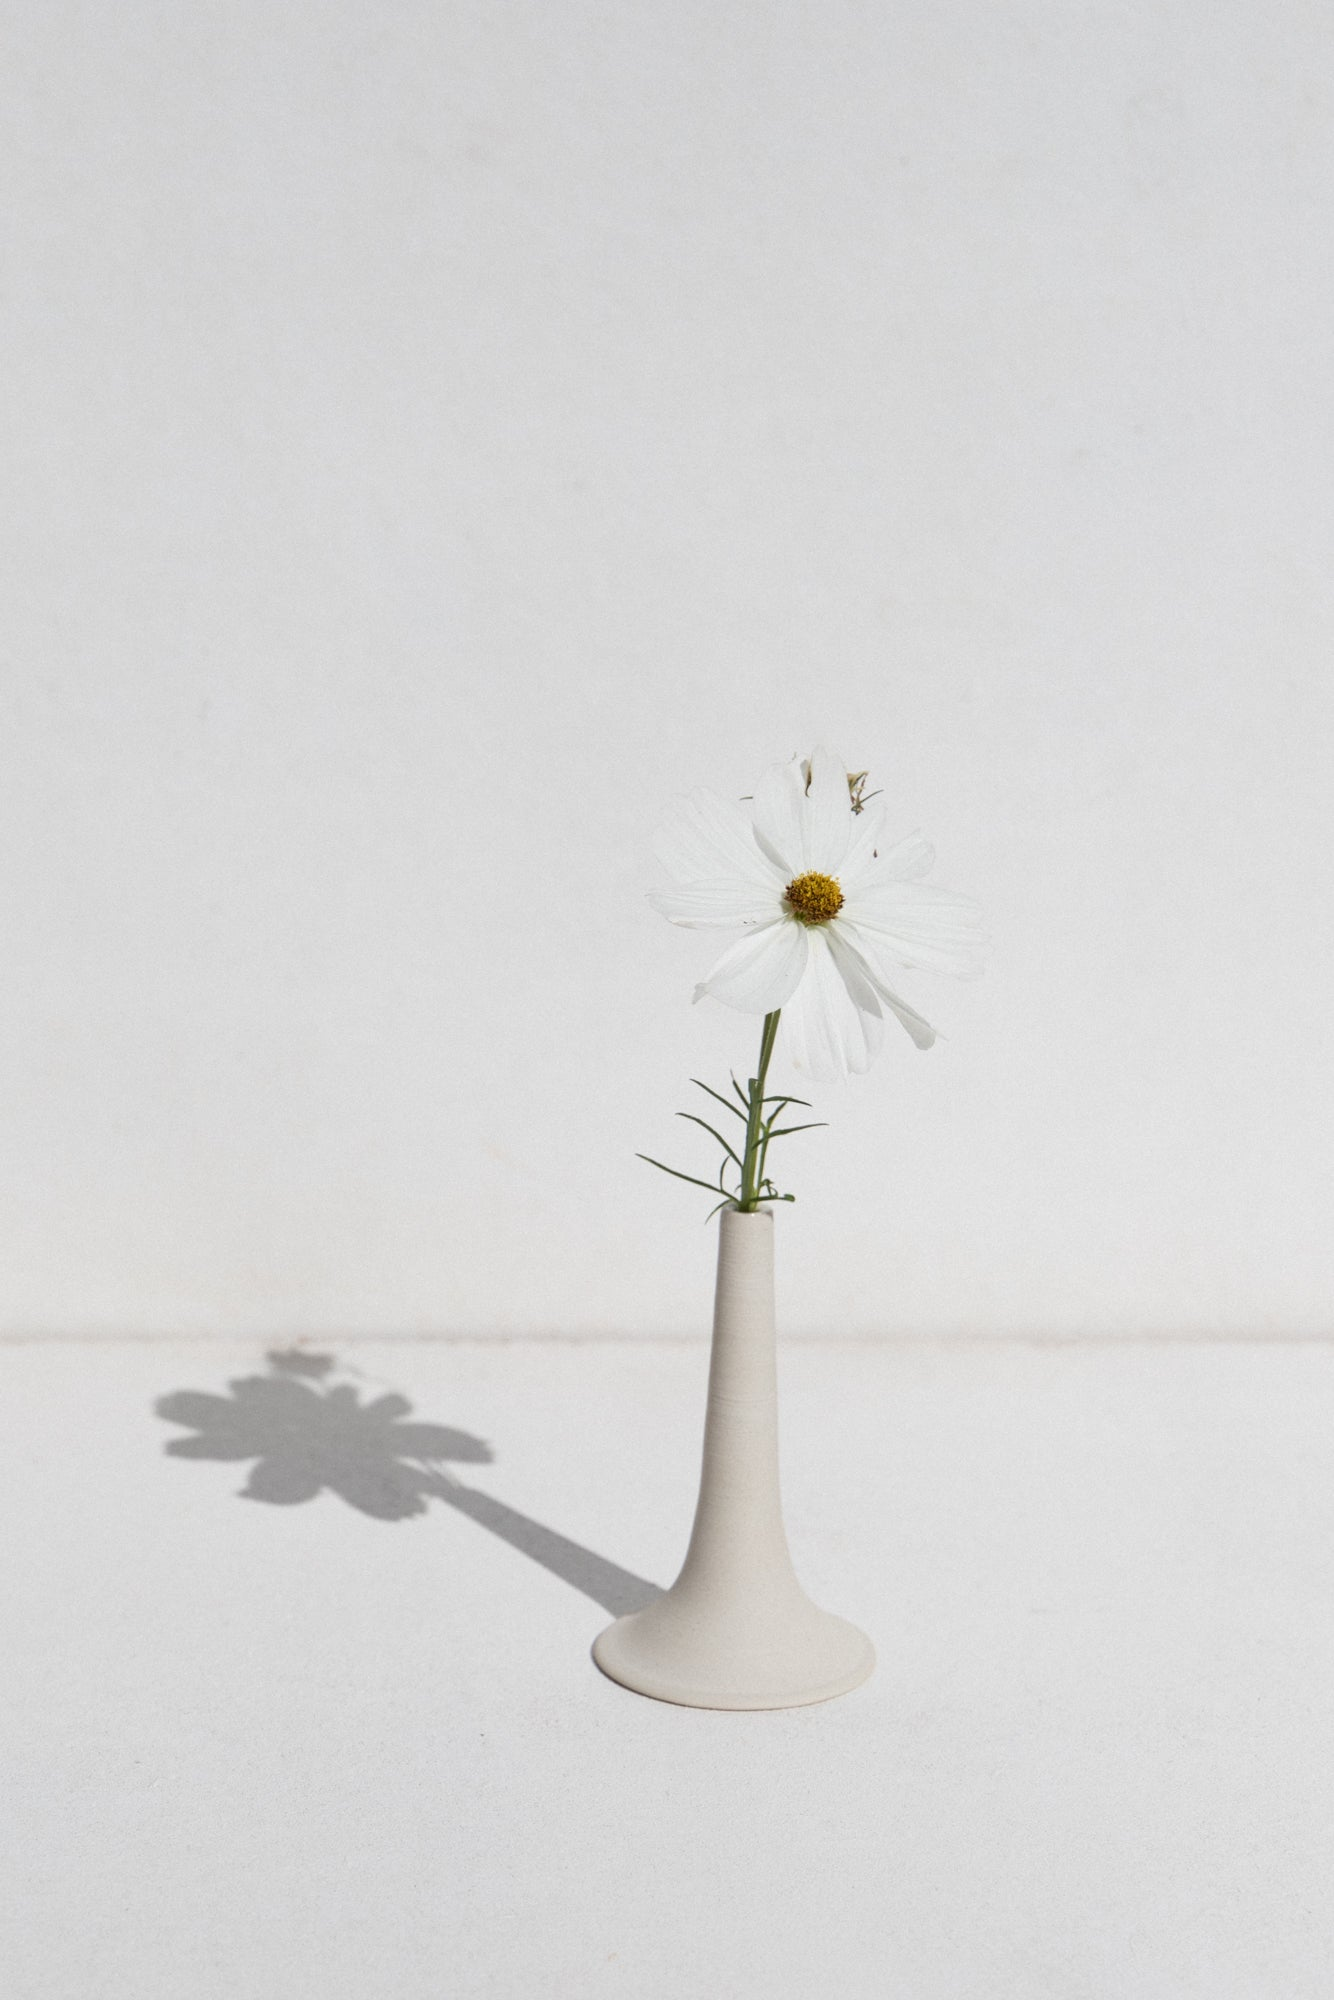 White Trumpet Bud Vase by Kura Studios with daisy Makers' Mrkt Makers Market Melbourne